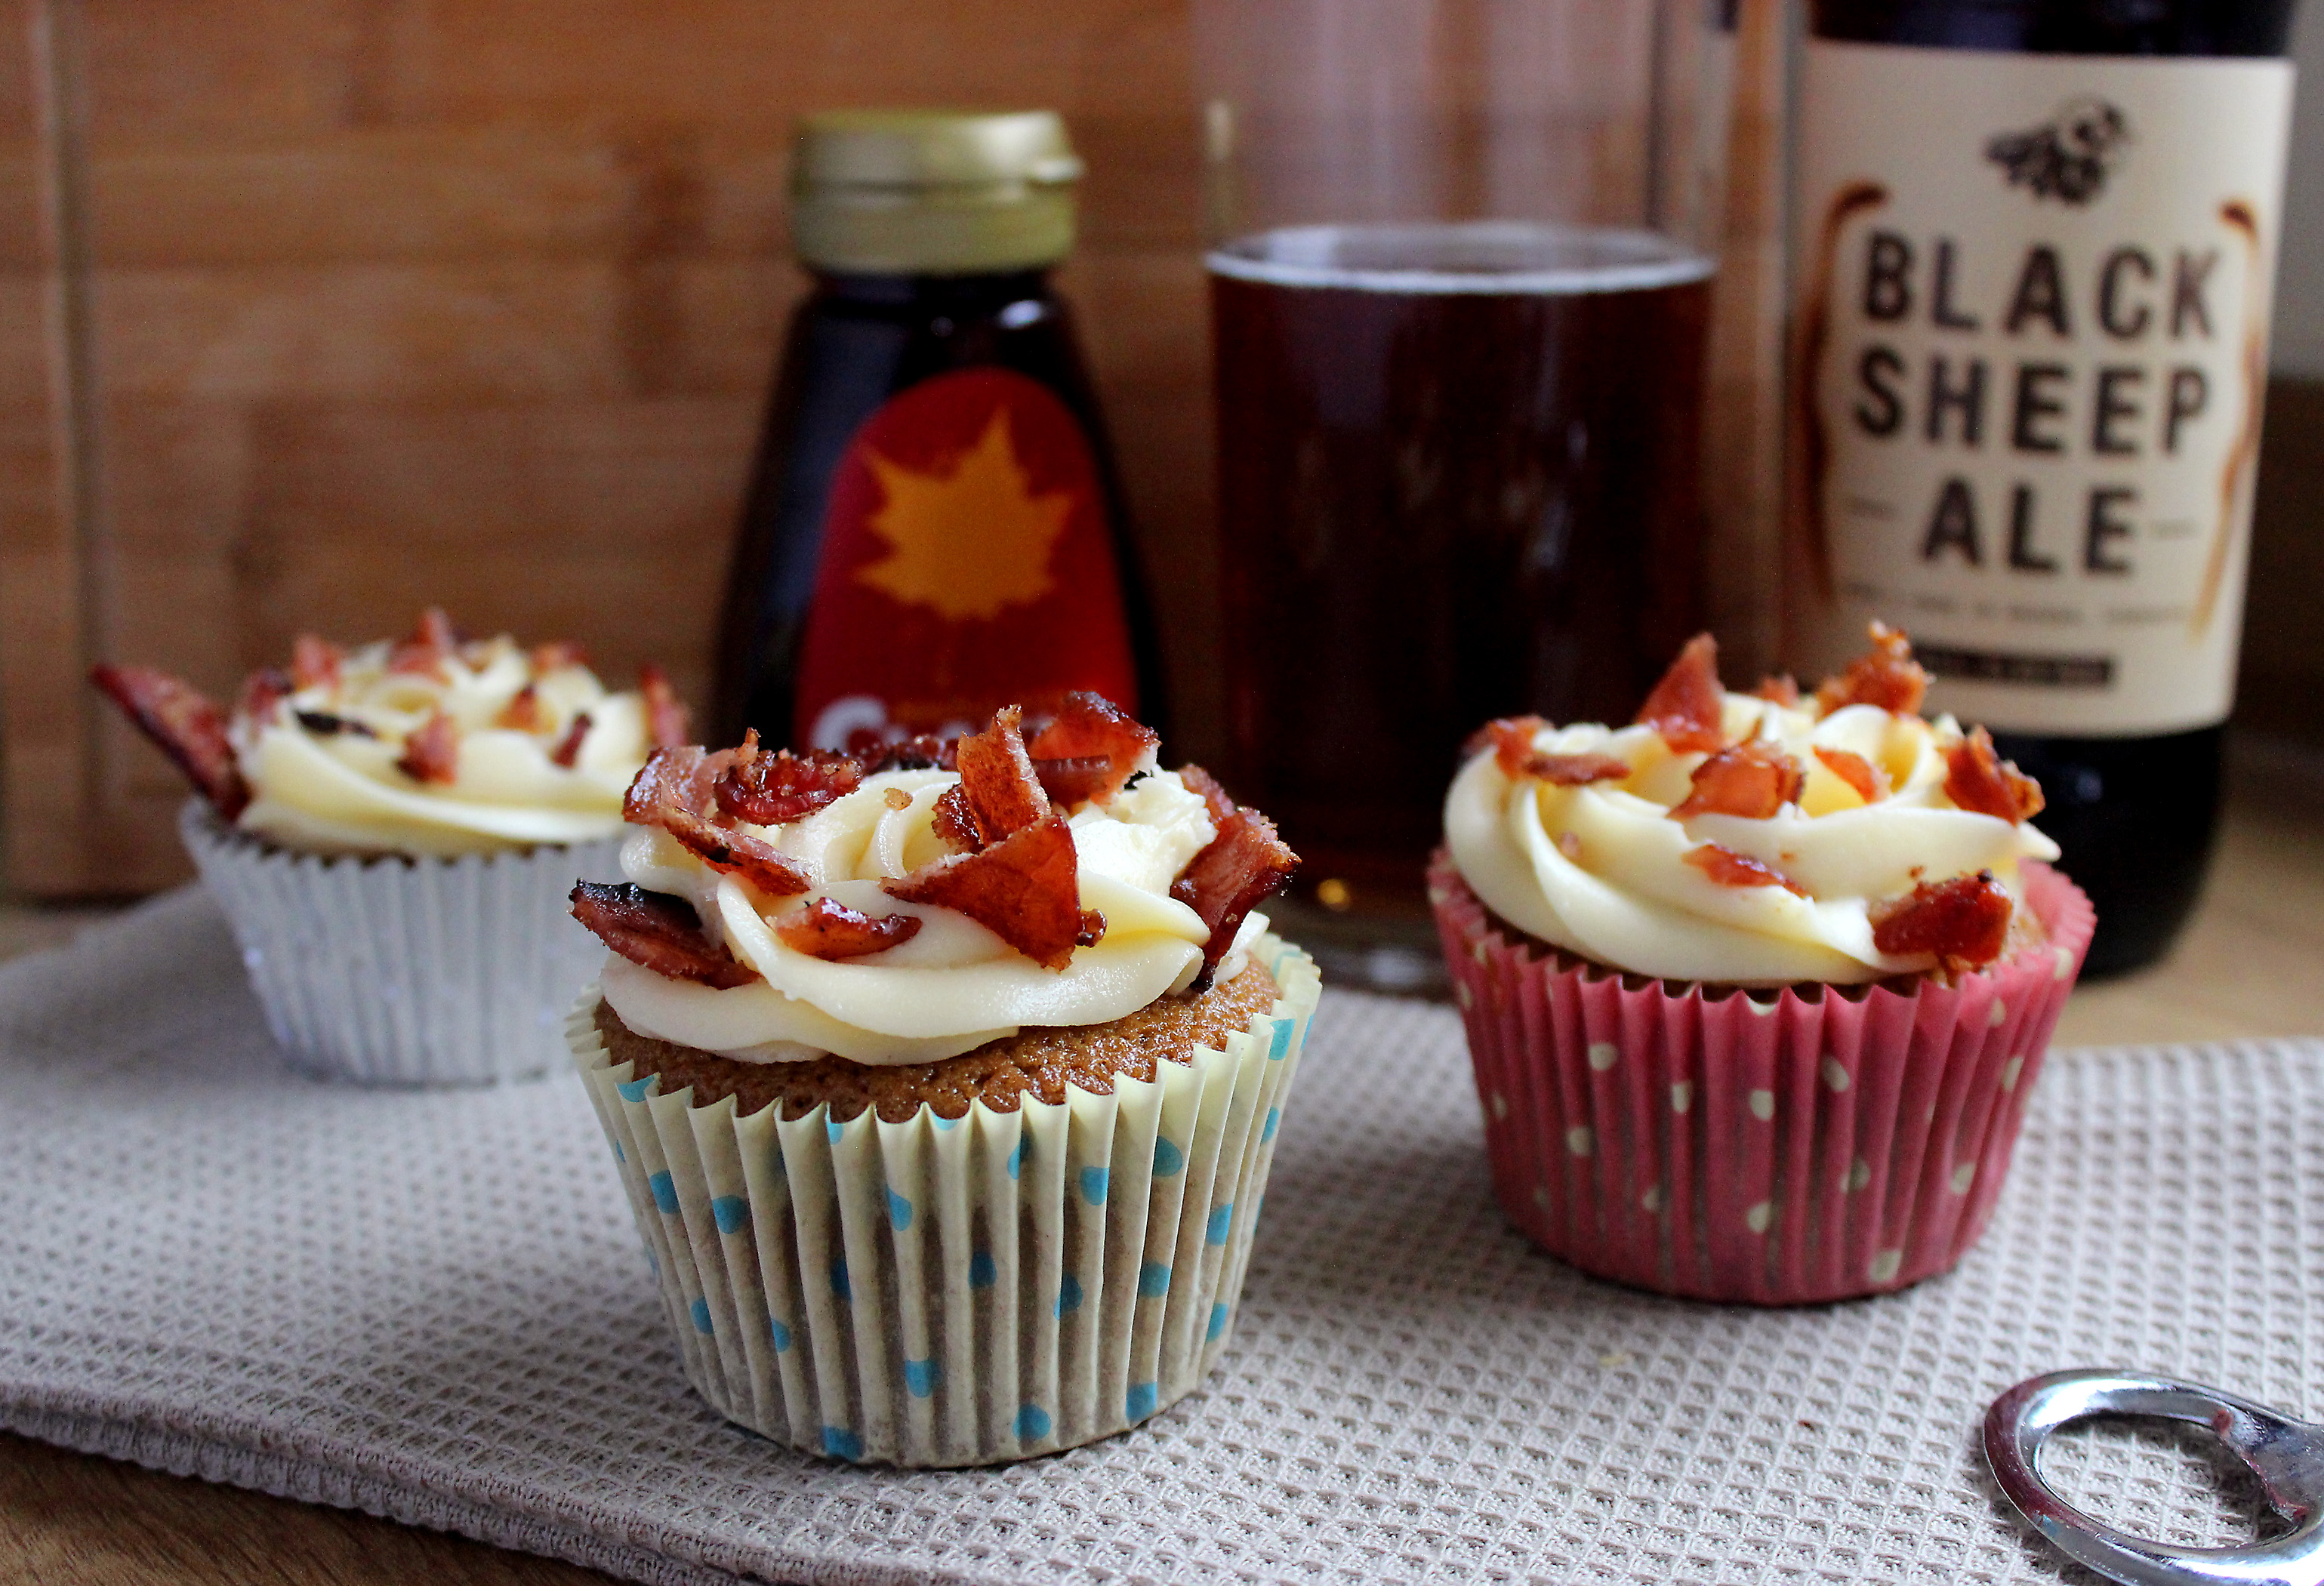 Beer batter maple bacon cupcakes recipe, blonde beer and bacon cupcakes, beer and bacon cupcakes no chocolate